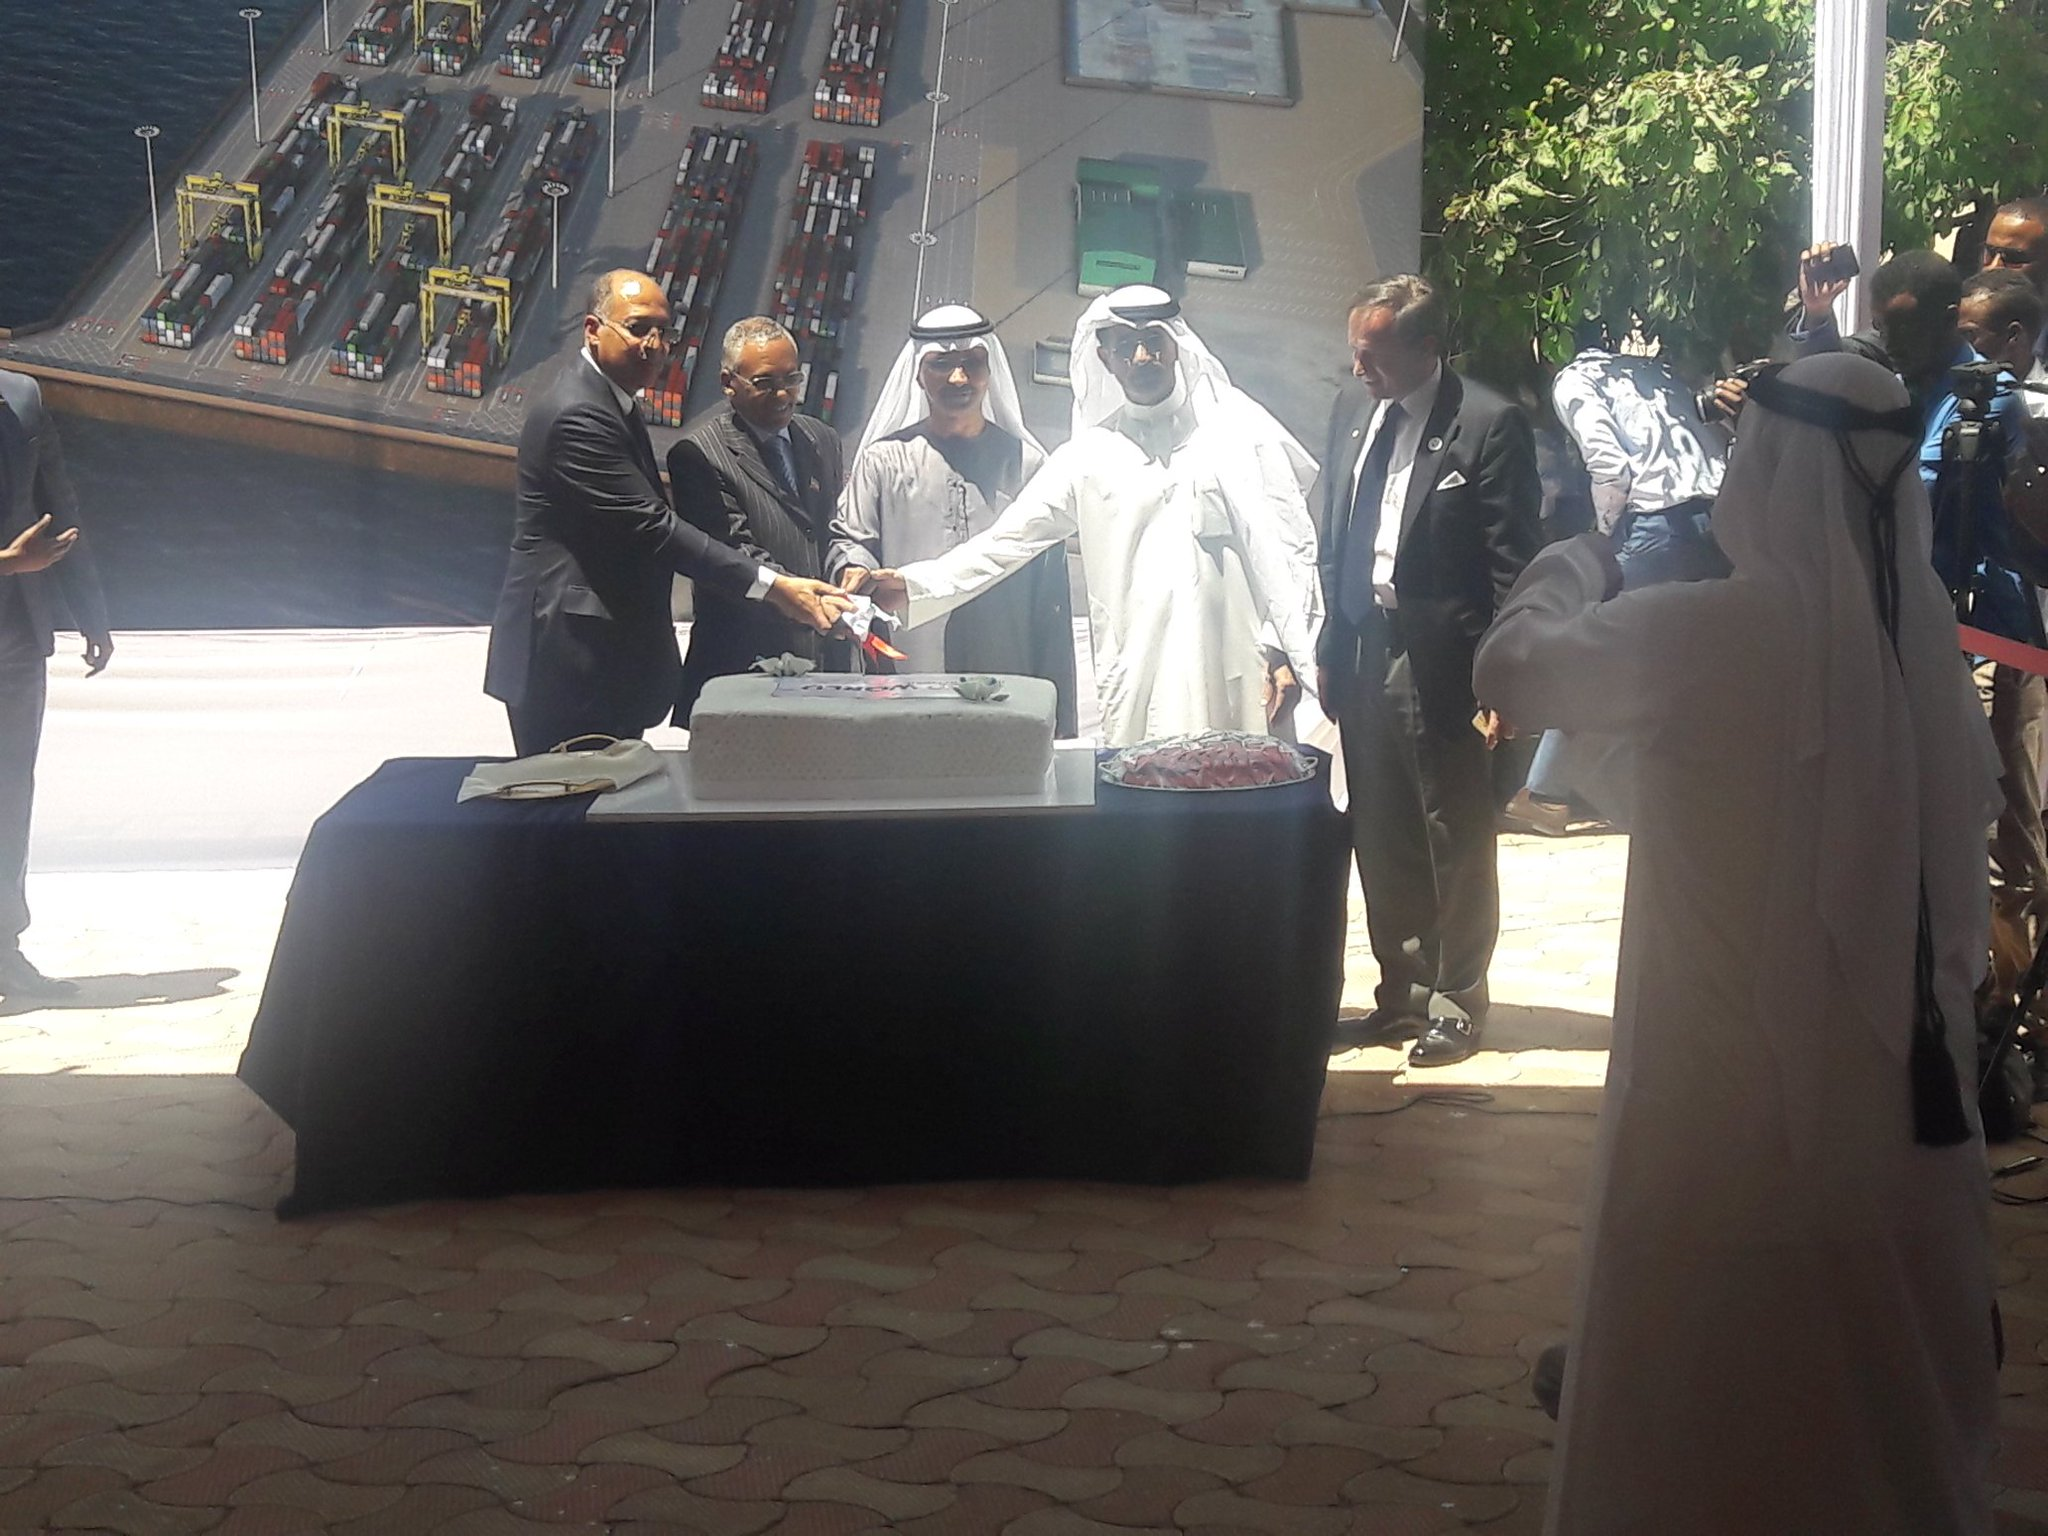 DP World and #Somaliland cut the wedding cake. Let's hope it turns out better than most marriages https://t.co/tUkbWePTRh